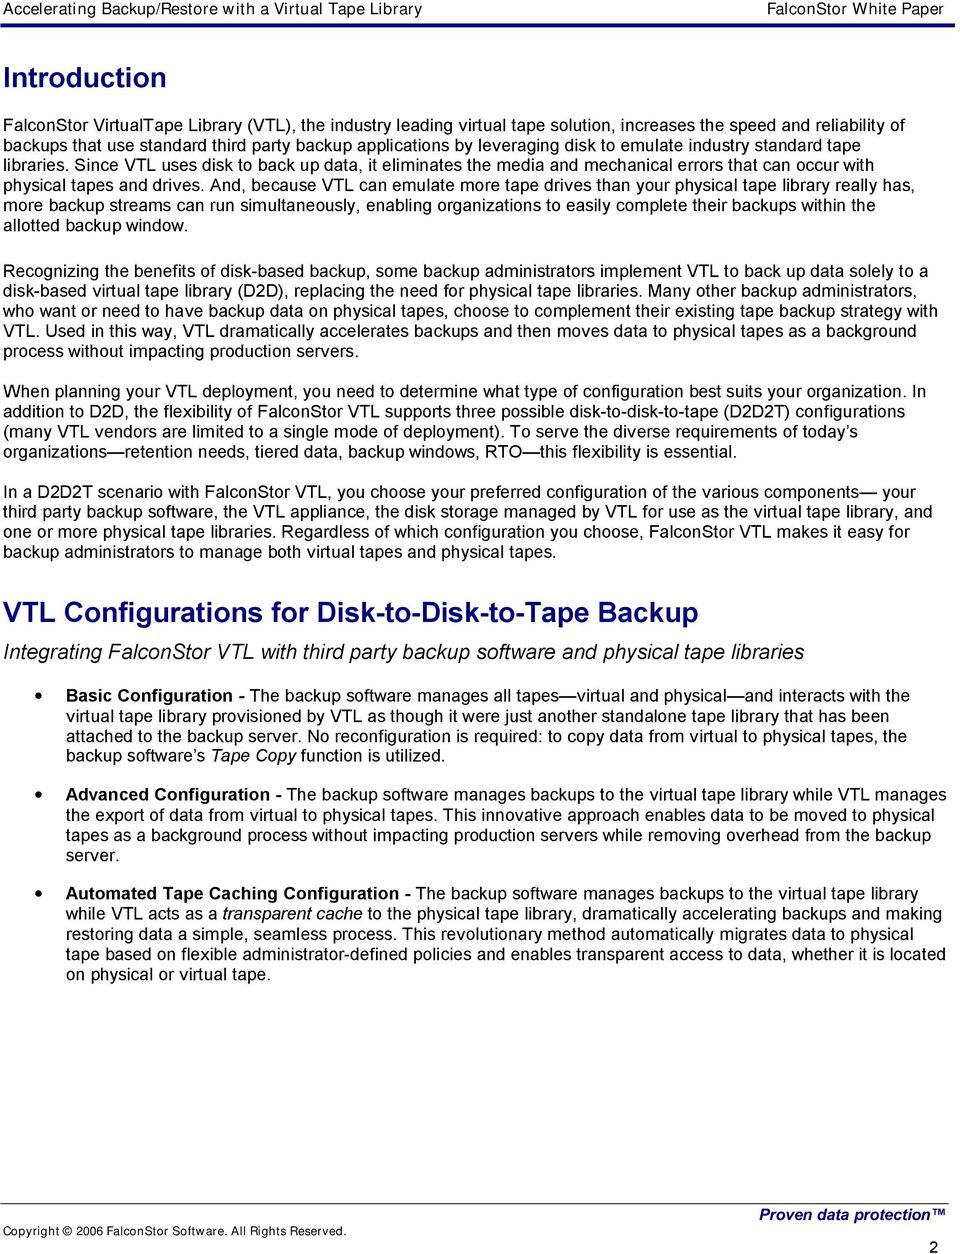 And, because VTL can emulate more tape drives than your physical tape library really has, more backup streams can run simultaneously, enabling organizations to easily complete their backups within